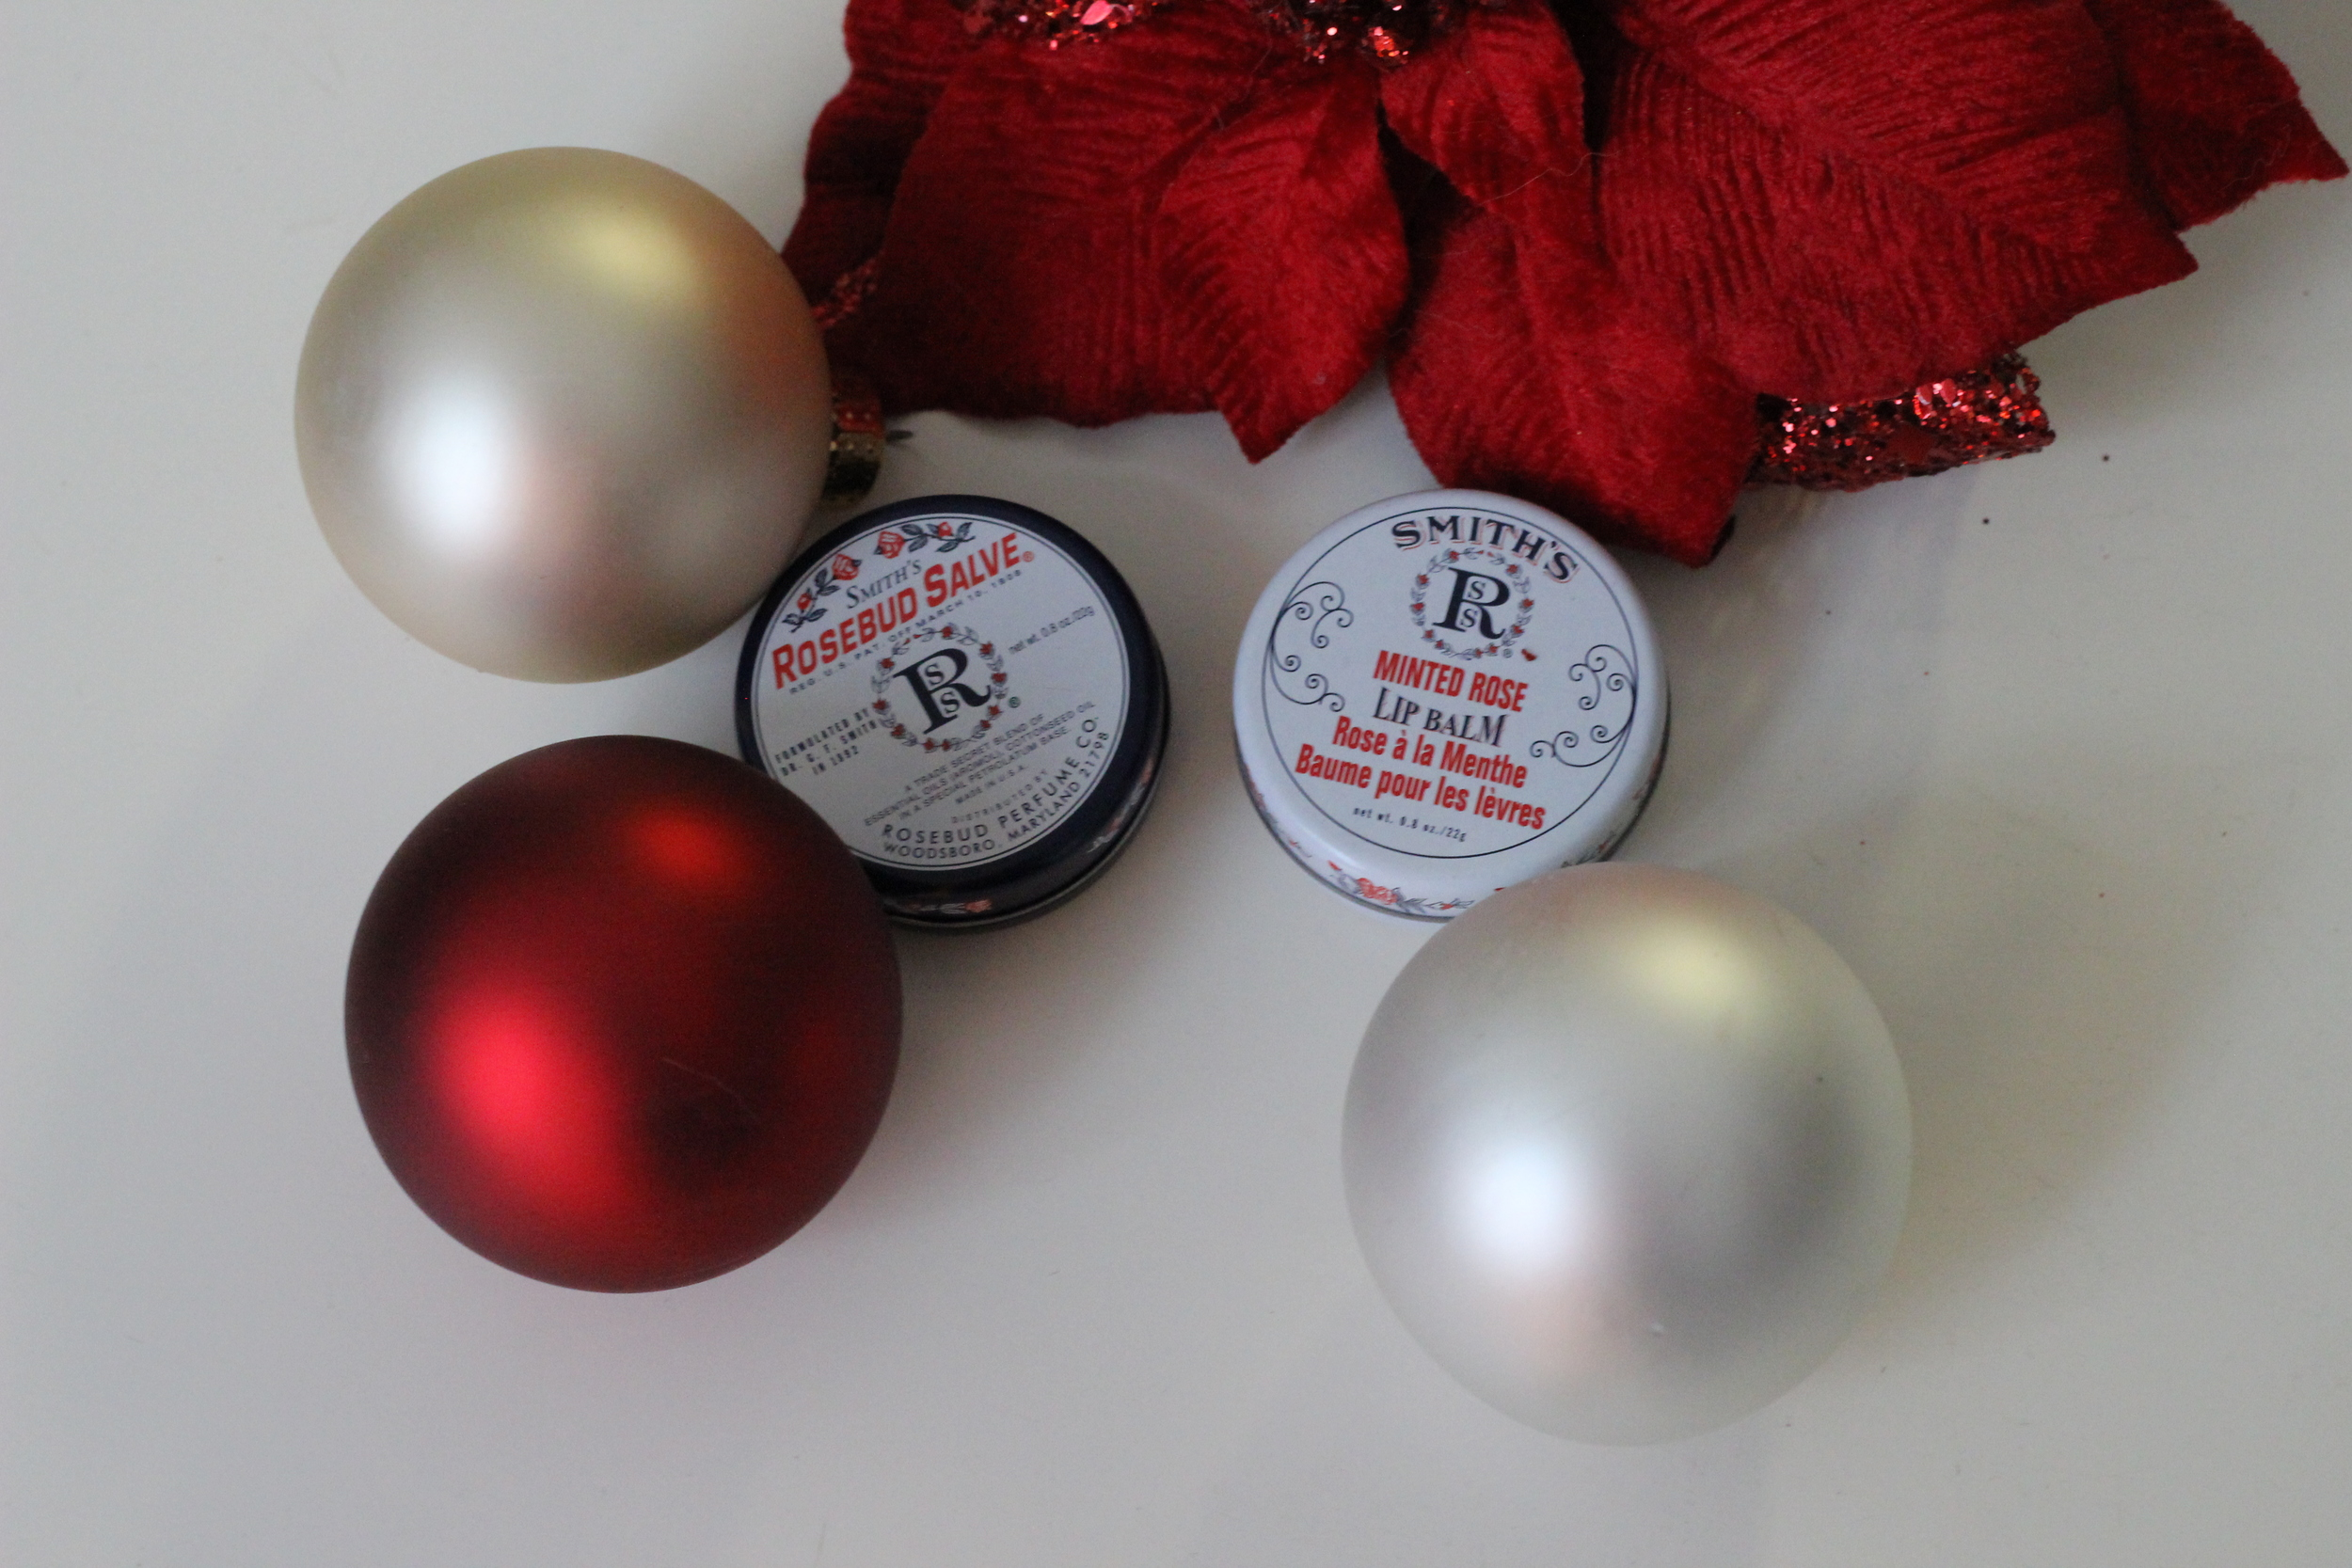 Smith's Rosebud Salve and Minted Rose